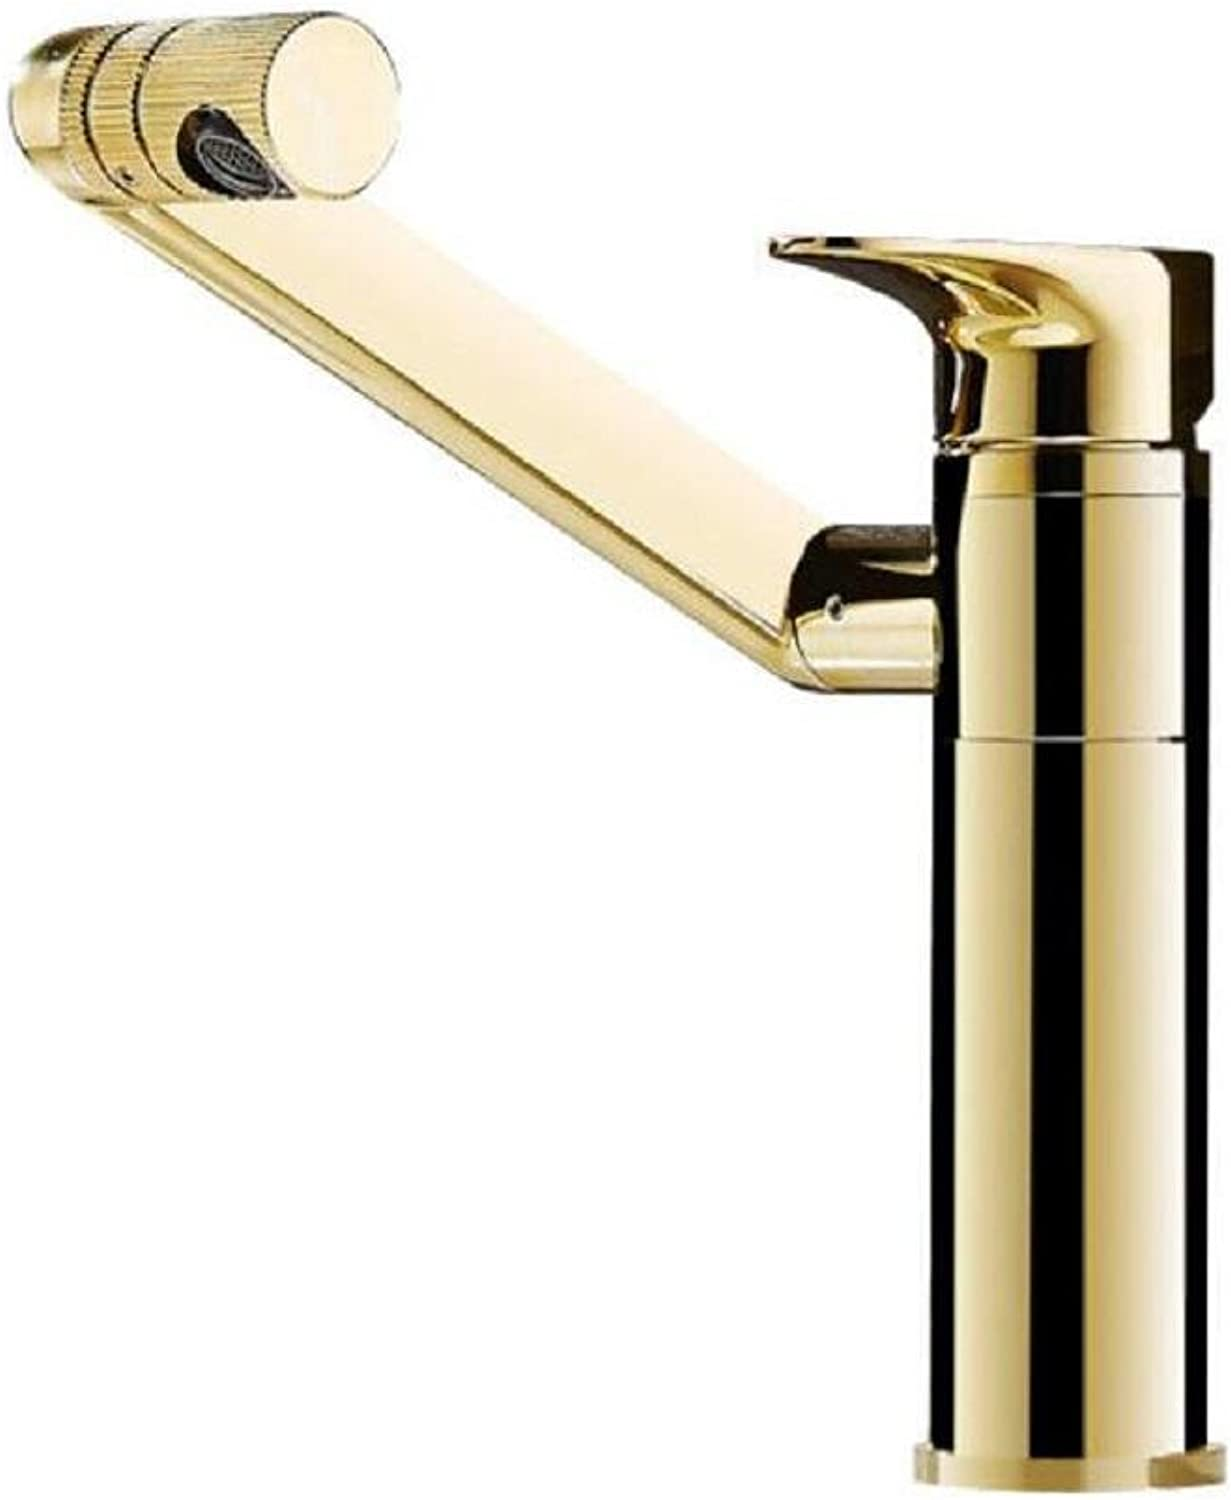 AMZH Countertop Basin Taps Full Copper Basin Hot And Cold Sink Faucet Multifunctional redatable Bathroom Cabinet Water Tap , B